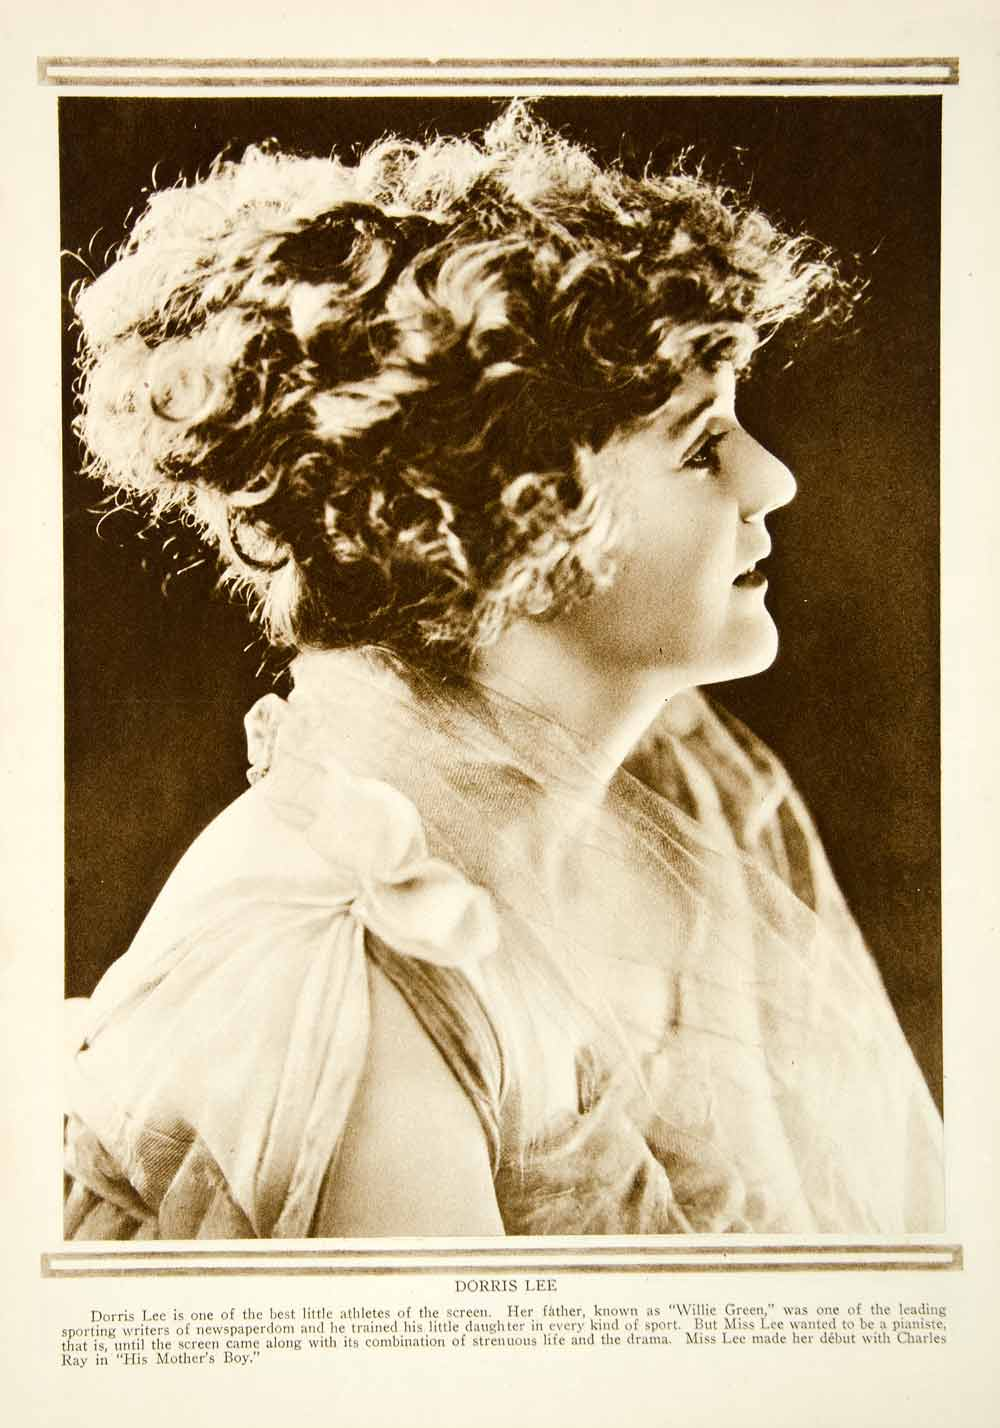 film and silent era Start studying film history test 1 learn vocabulary, terms, and more with flashcards, games, and other study tools search create log in sign up austrian director, actor and producer, most notable as being a film star of the silent era, wrote, directed.